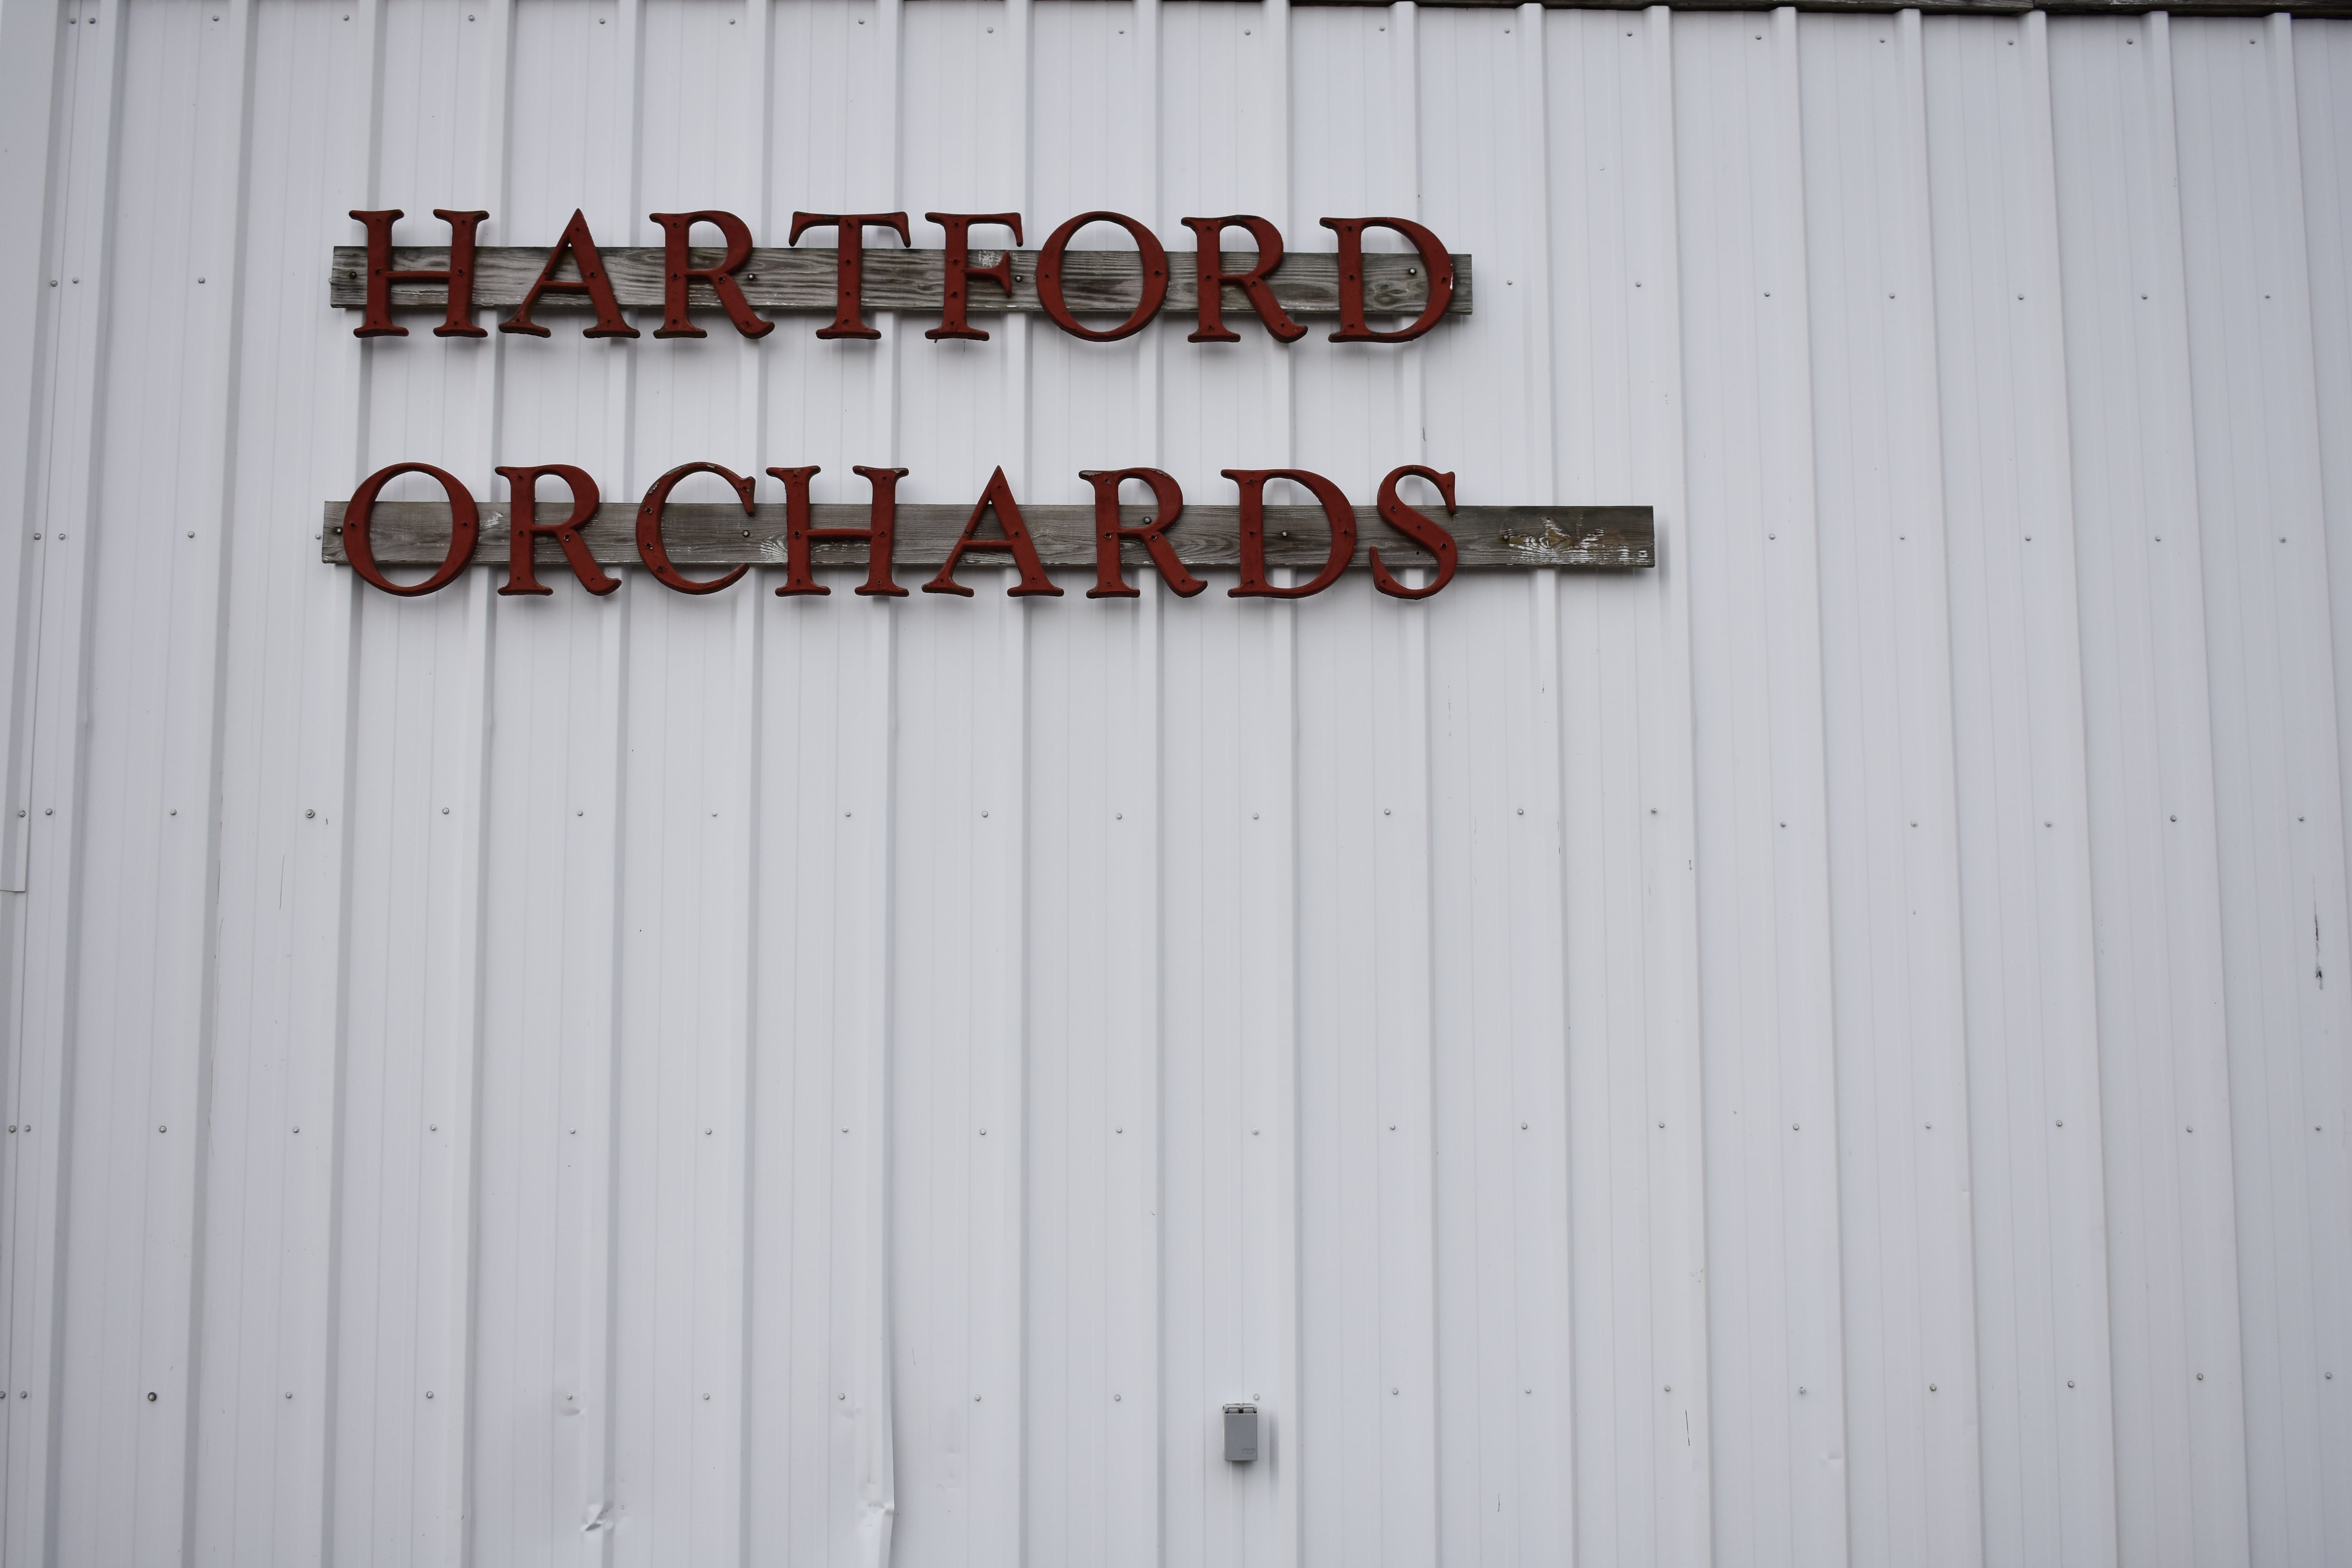 https://0201.nccdn.net/4_2/000/000/07d/95b/Old-Orchard-Building-Sign-min-6000x4000.jpg